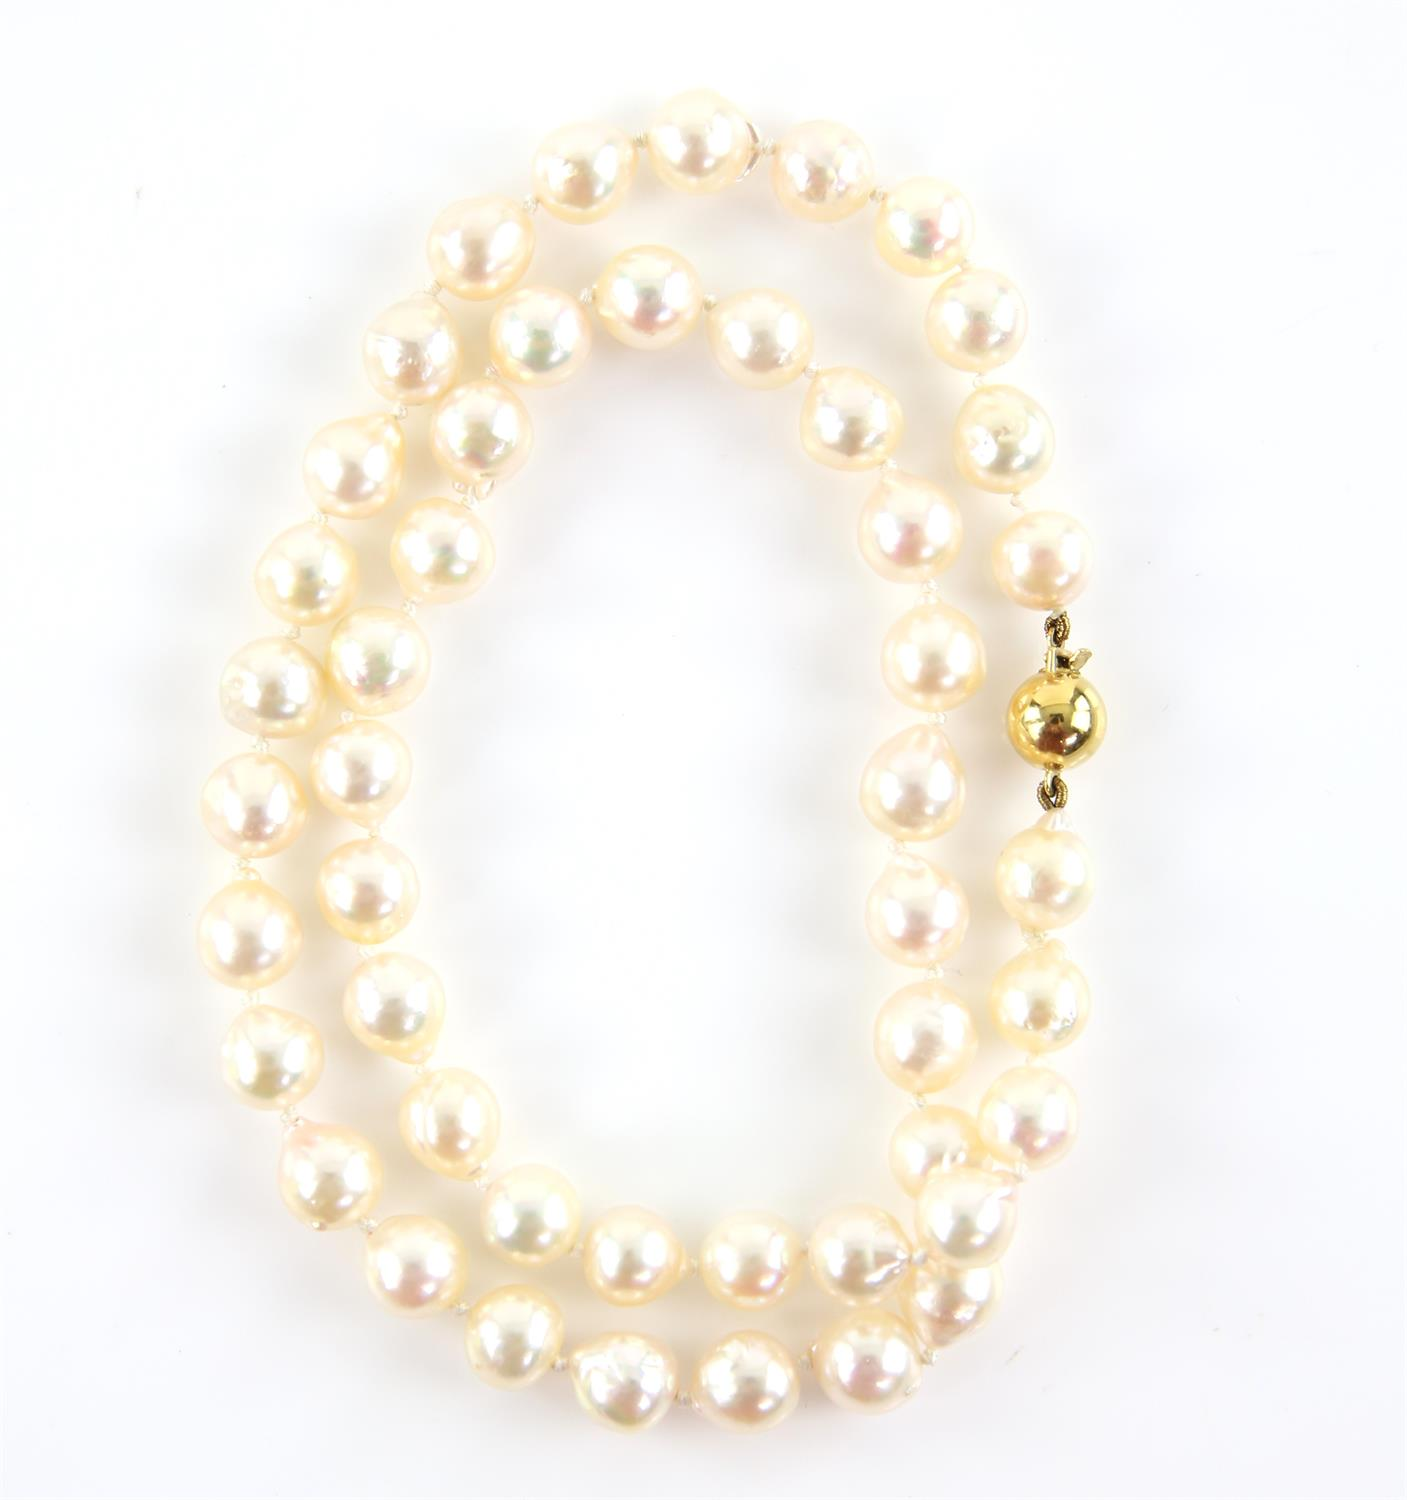 Pearl necklace, comprised of forty-seven 7.9-8.5mm cultured cream pearls, strung with knots, - Image 2 of 3